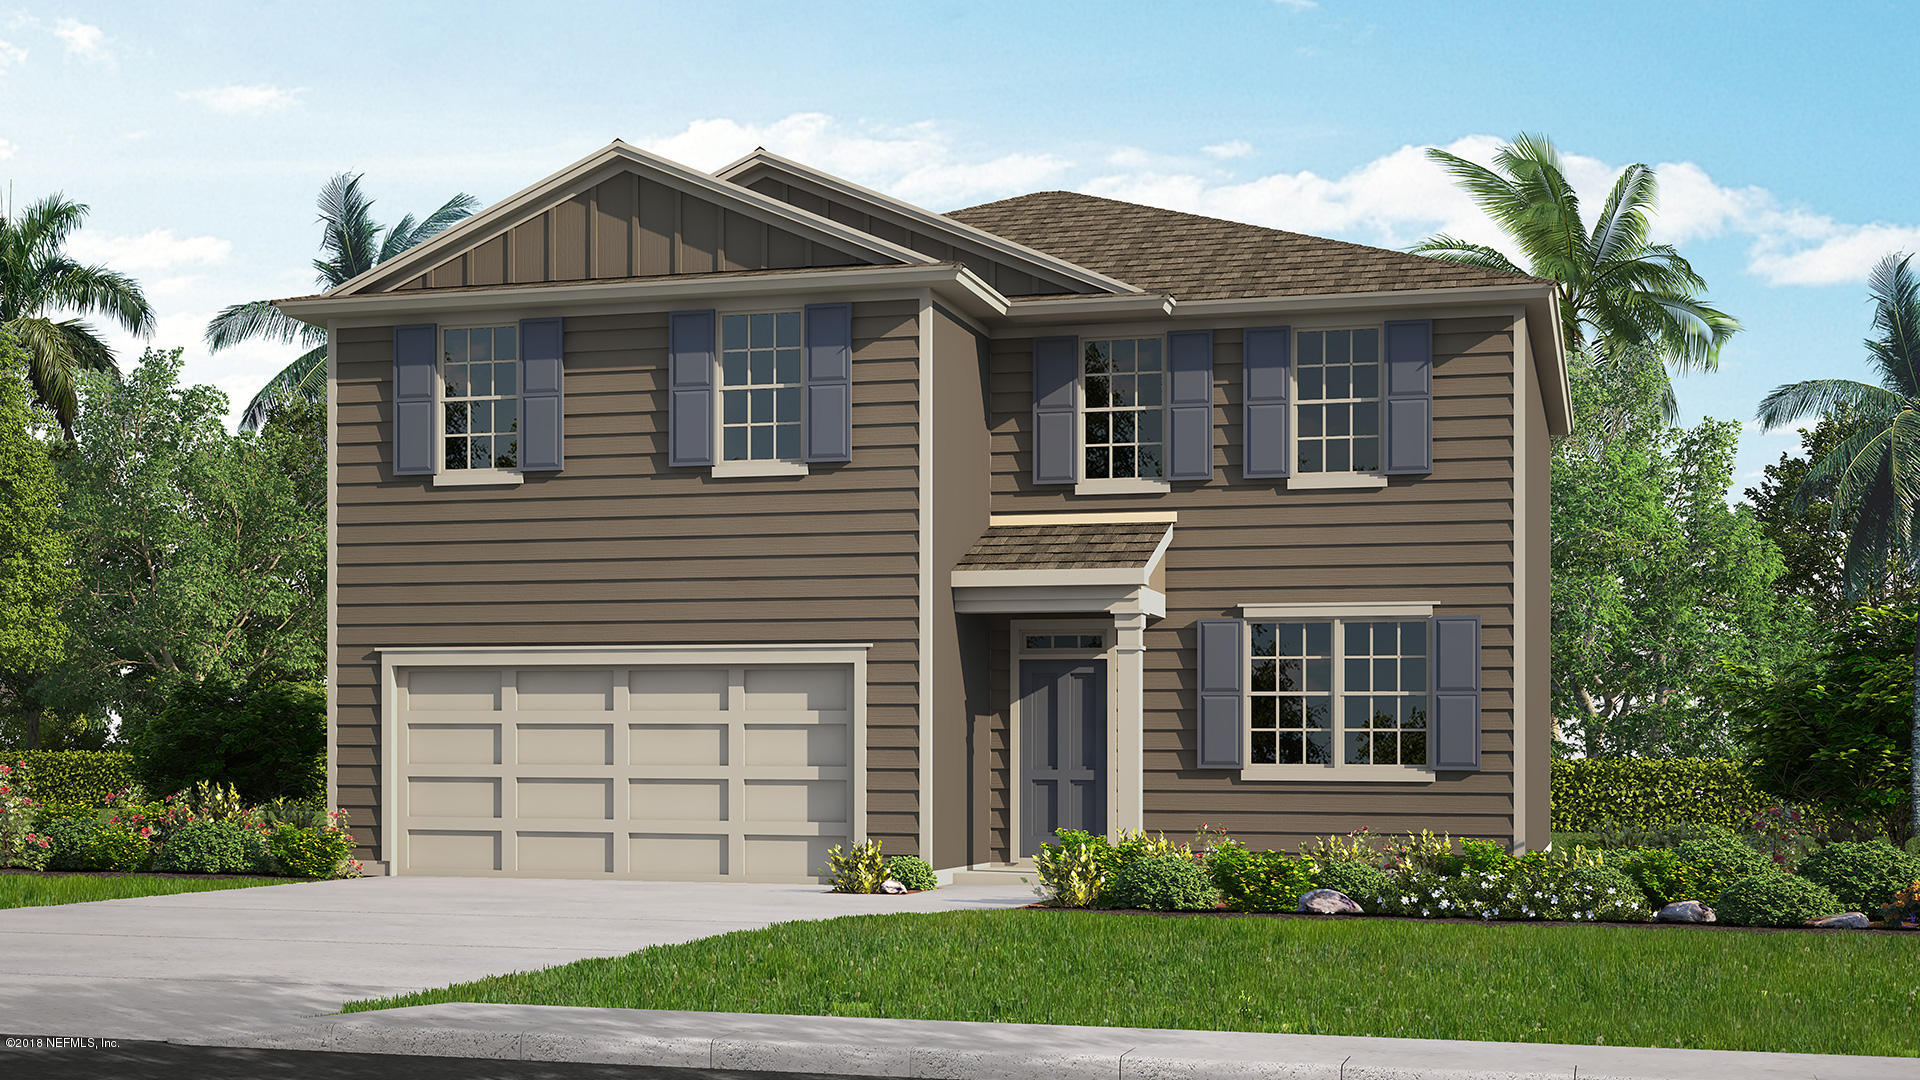 12244 GLIMMER, JACKSONVILLE, FLORIDA 32219, 4 Bedrooms Bedrooms, ,2 BathroomsBathrooms,Residential - single family,For sale,GLIMMER,952671